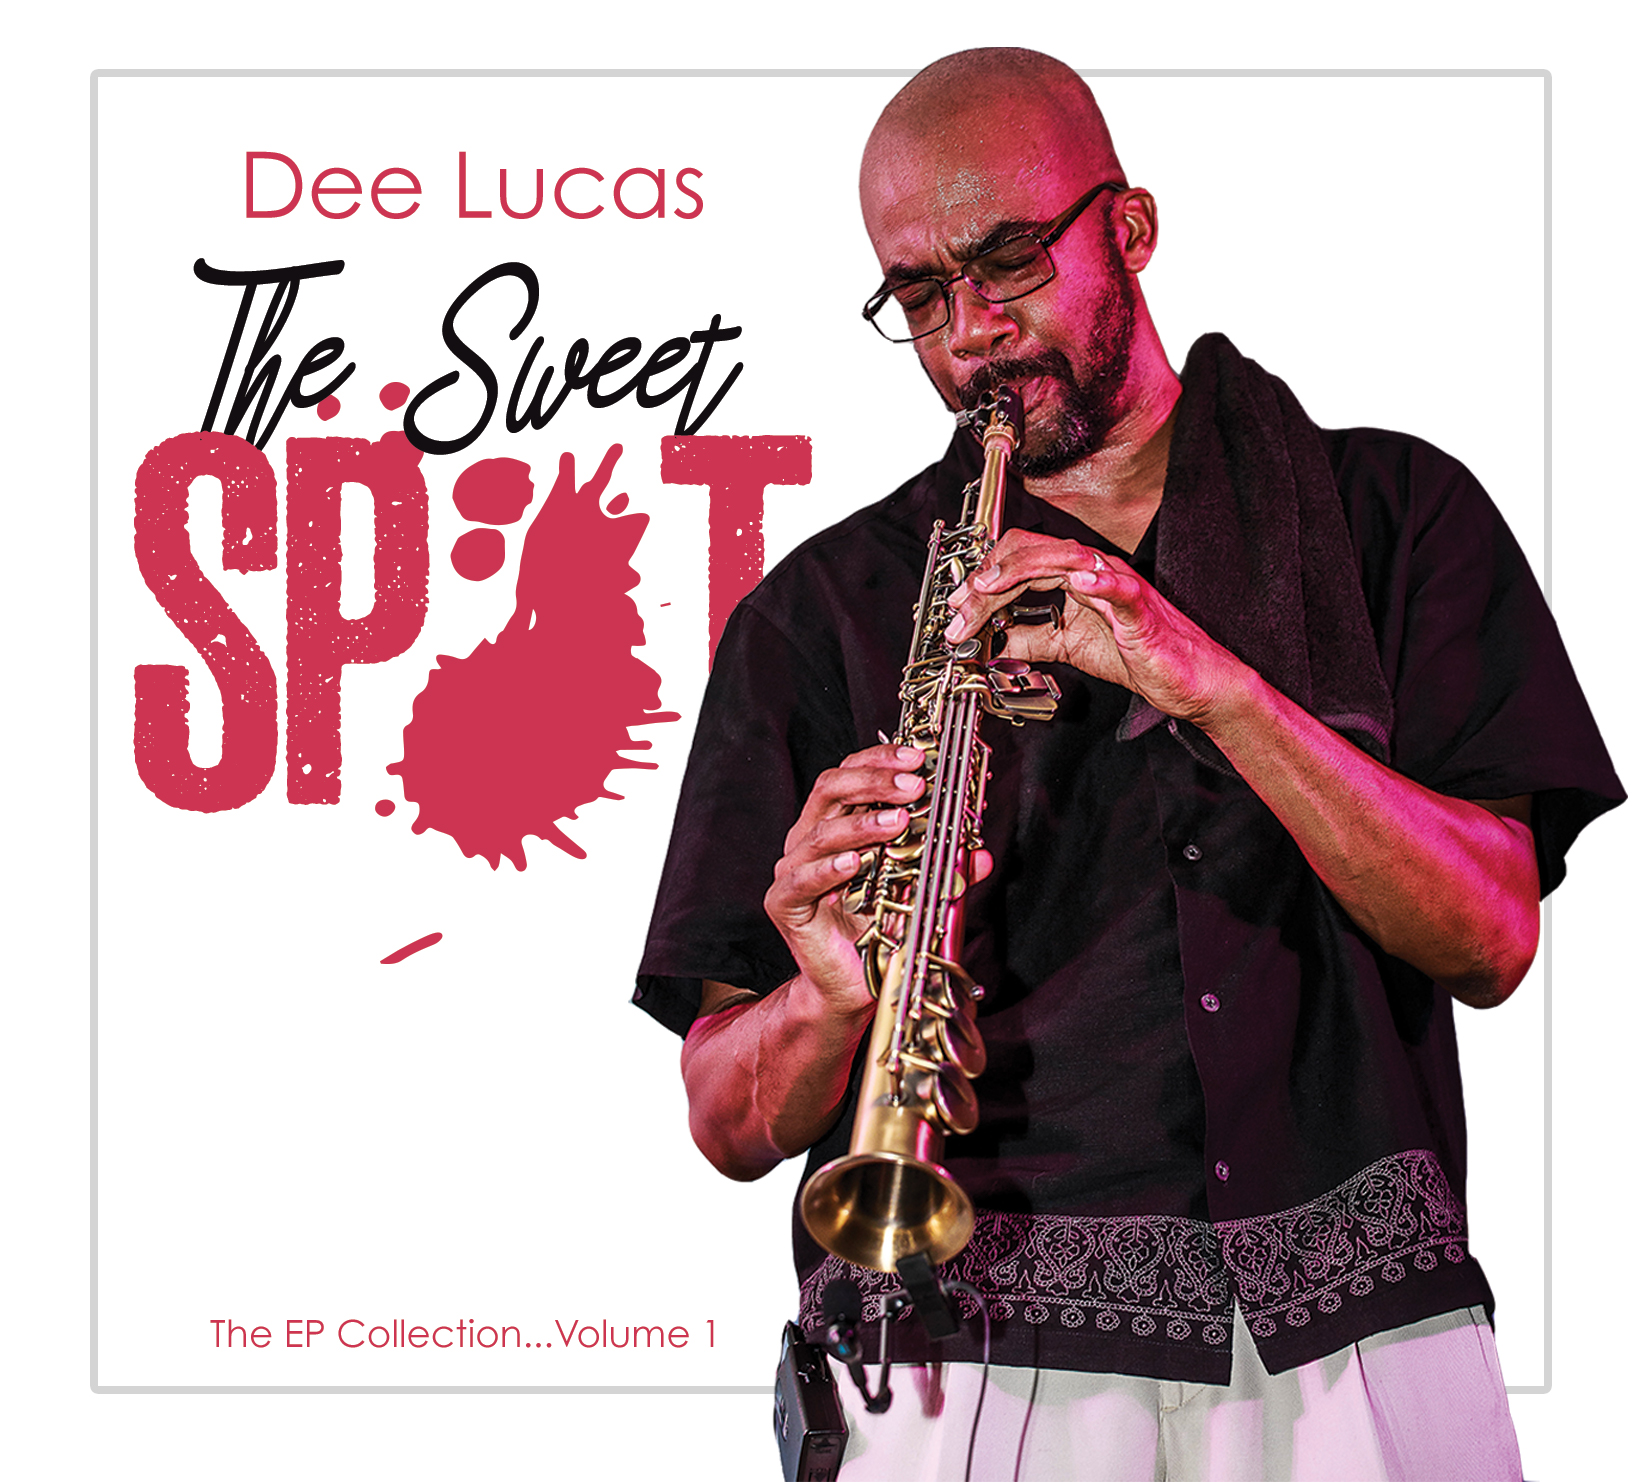 National recording artist and saxophonist Dee Lucas has been steadily growing his brand and fan base beginning with Remembrance in 2004, a tribute to the late legend George Howard. Thereafter, it has been a steady showcase of unique stylings with Something to Ride 2 (2007), Standing Room Only (2010), Rebirth of the Smooth (2012), The Smooth Factor (2014), & Going Deeper (2016).